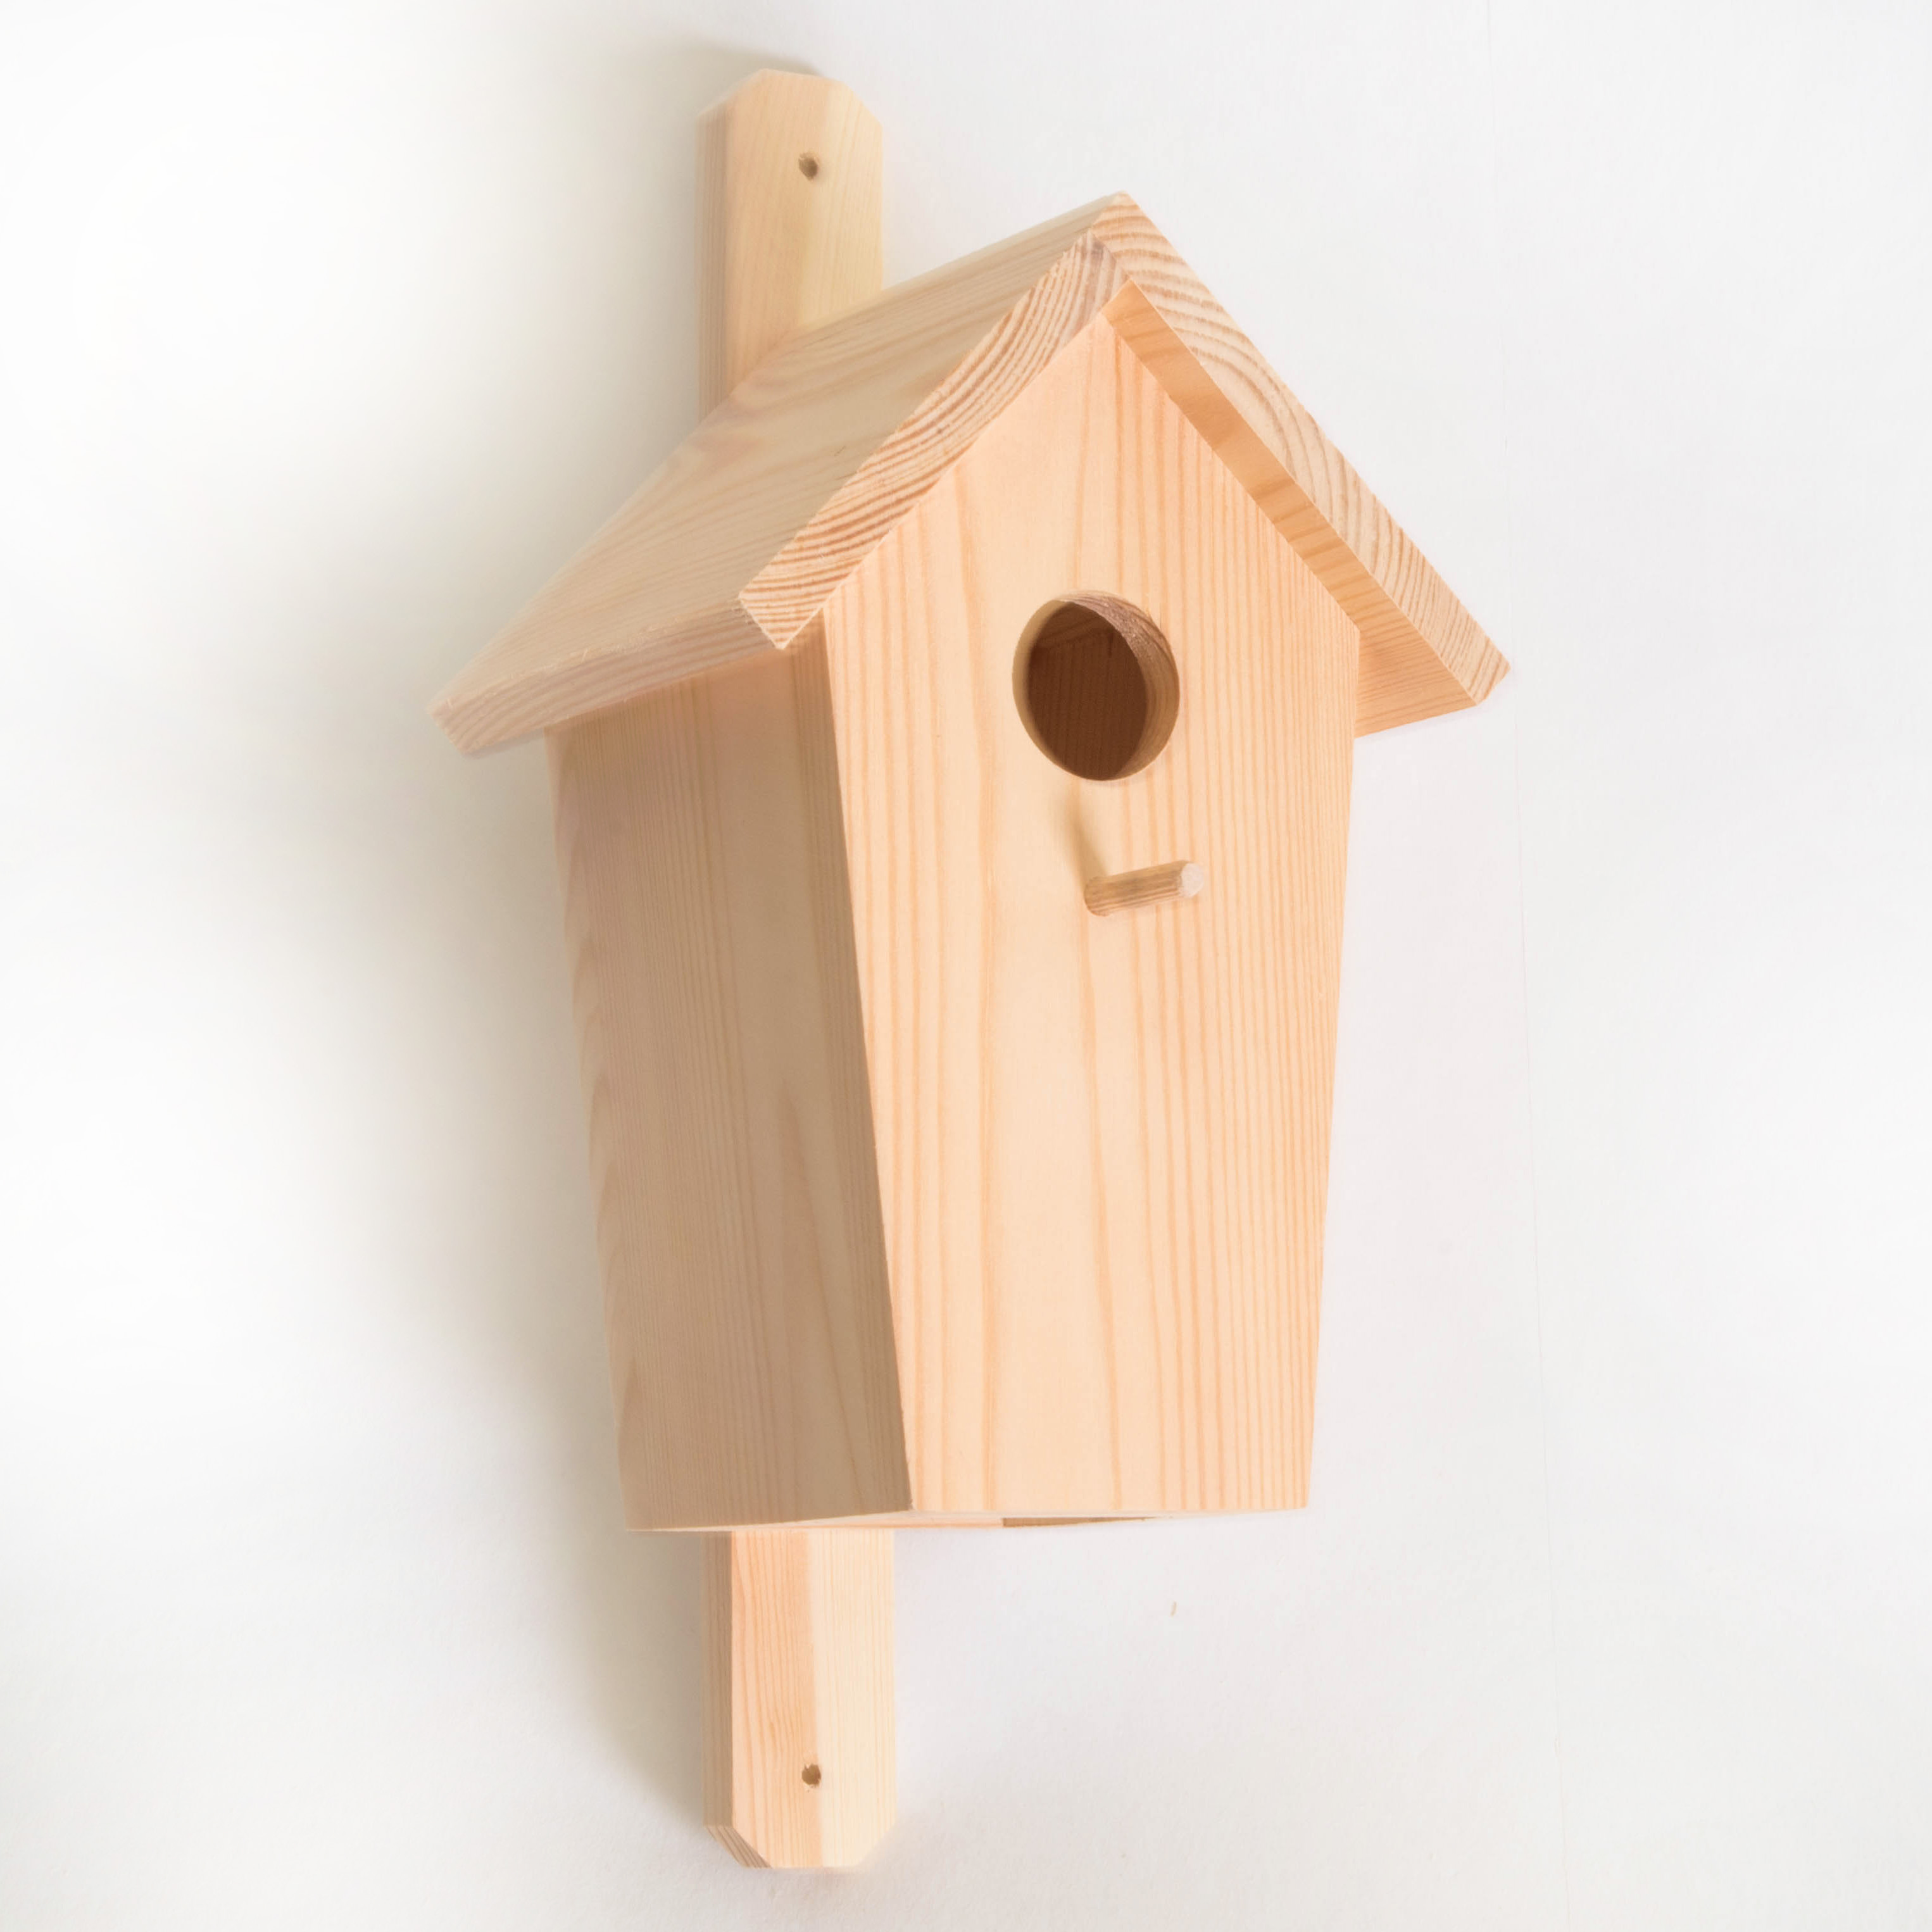 exclusive large wargrawe nowe bird hopper for kwadrat grain table products karmnik zdjecie from feeder wooden